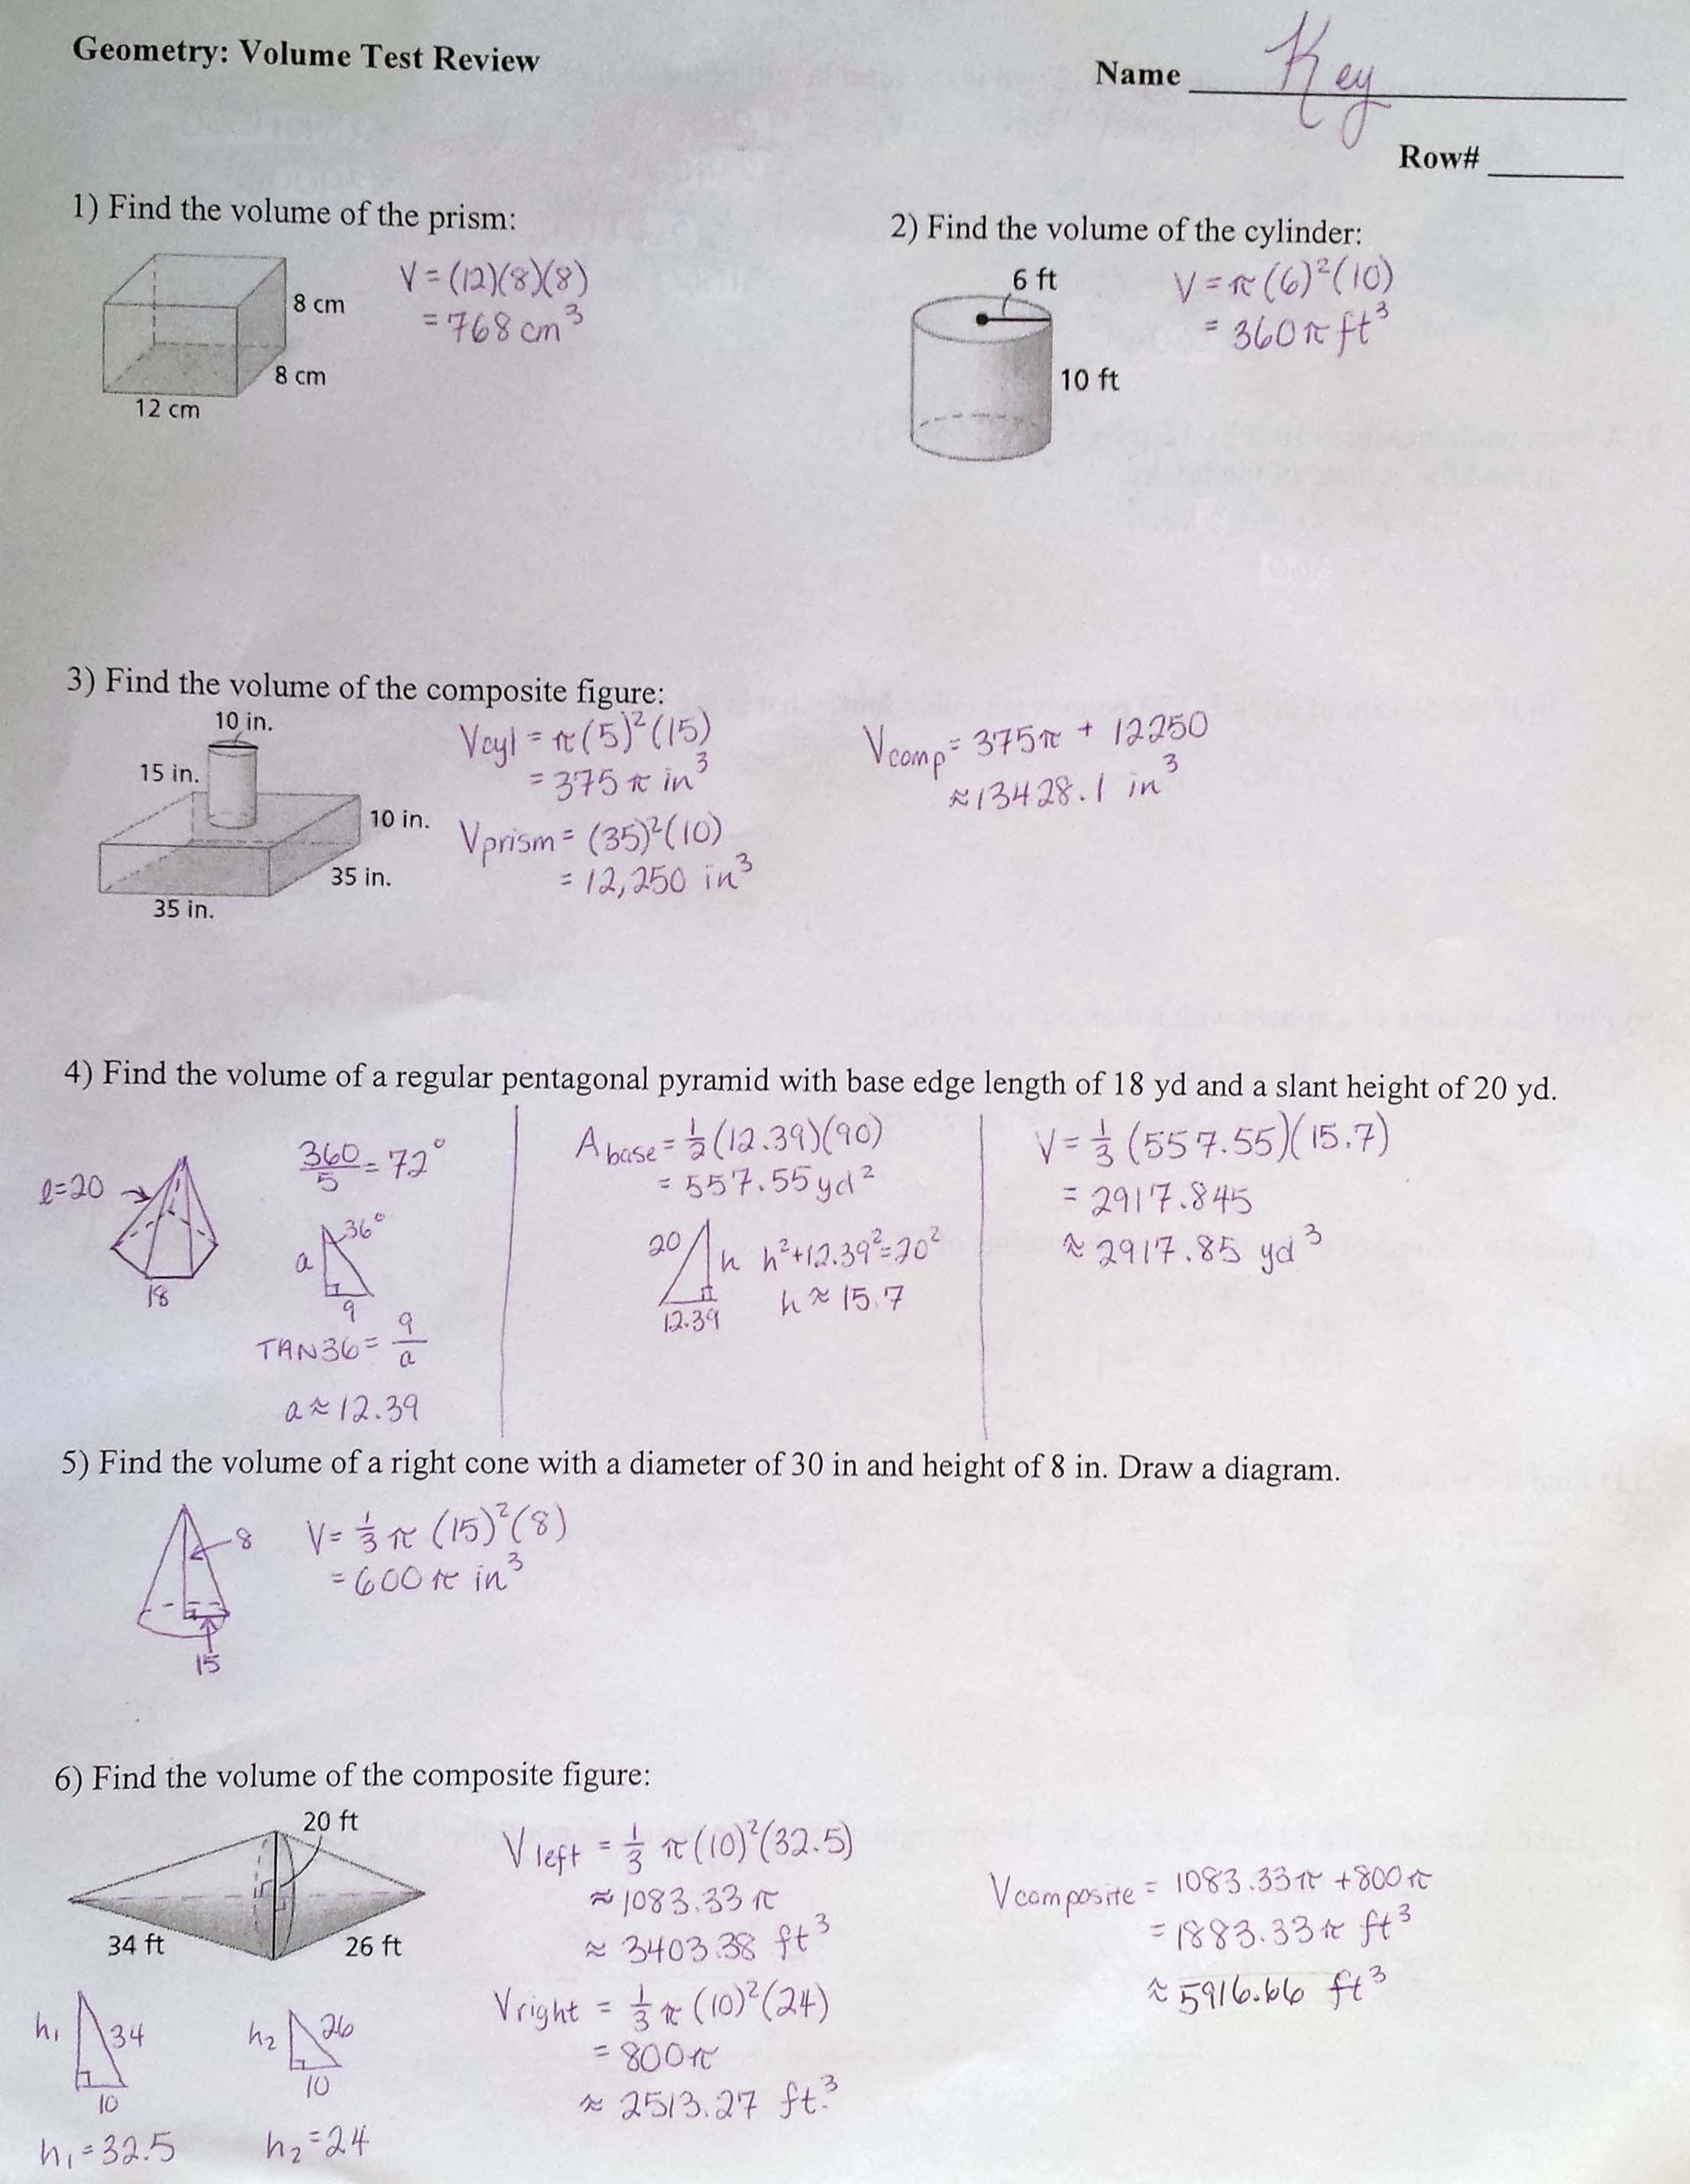 answers to homework questions Read and download homework questions section 4 answers pasco scientific free ebooks in pdf format - health packet answers tnt academy 1992 suzuki bandit gsf 400.